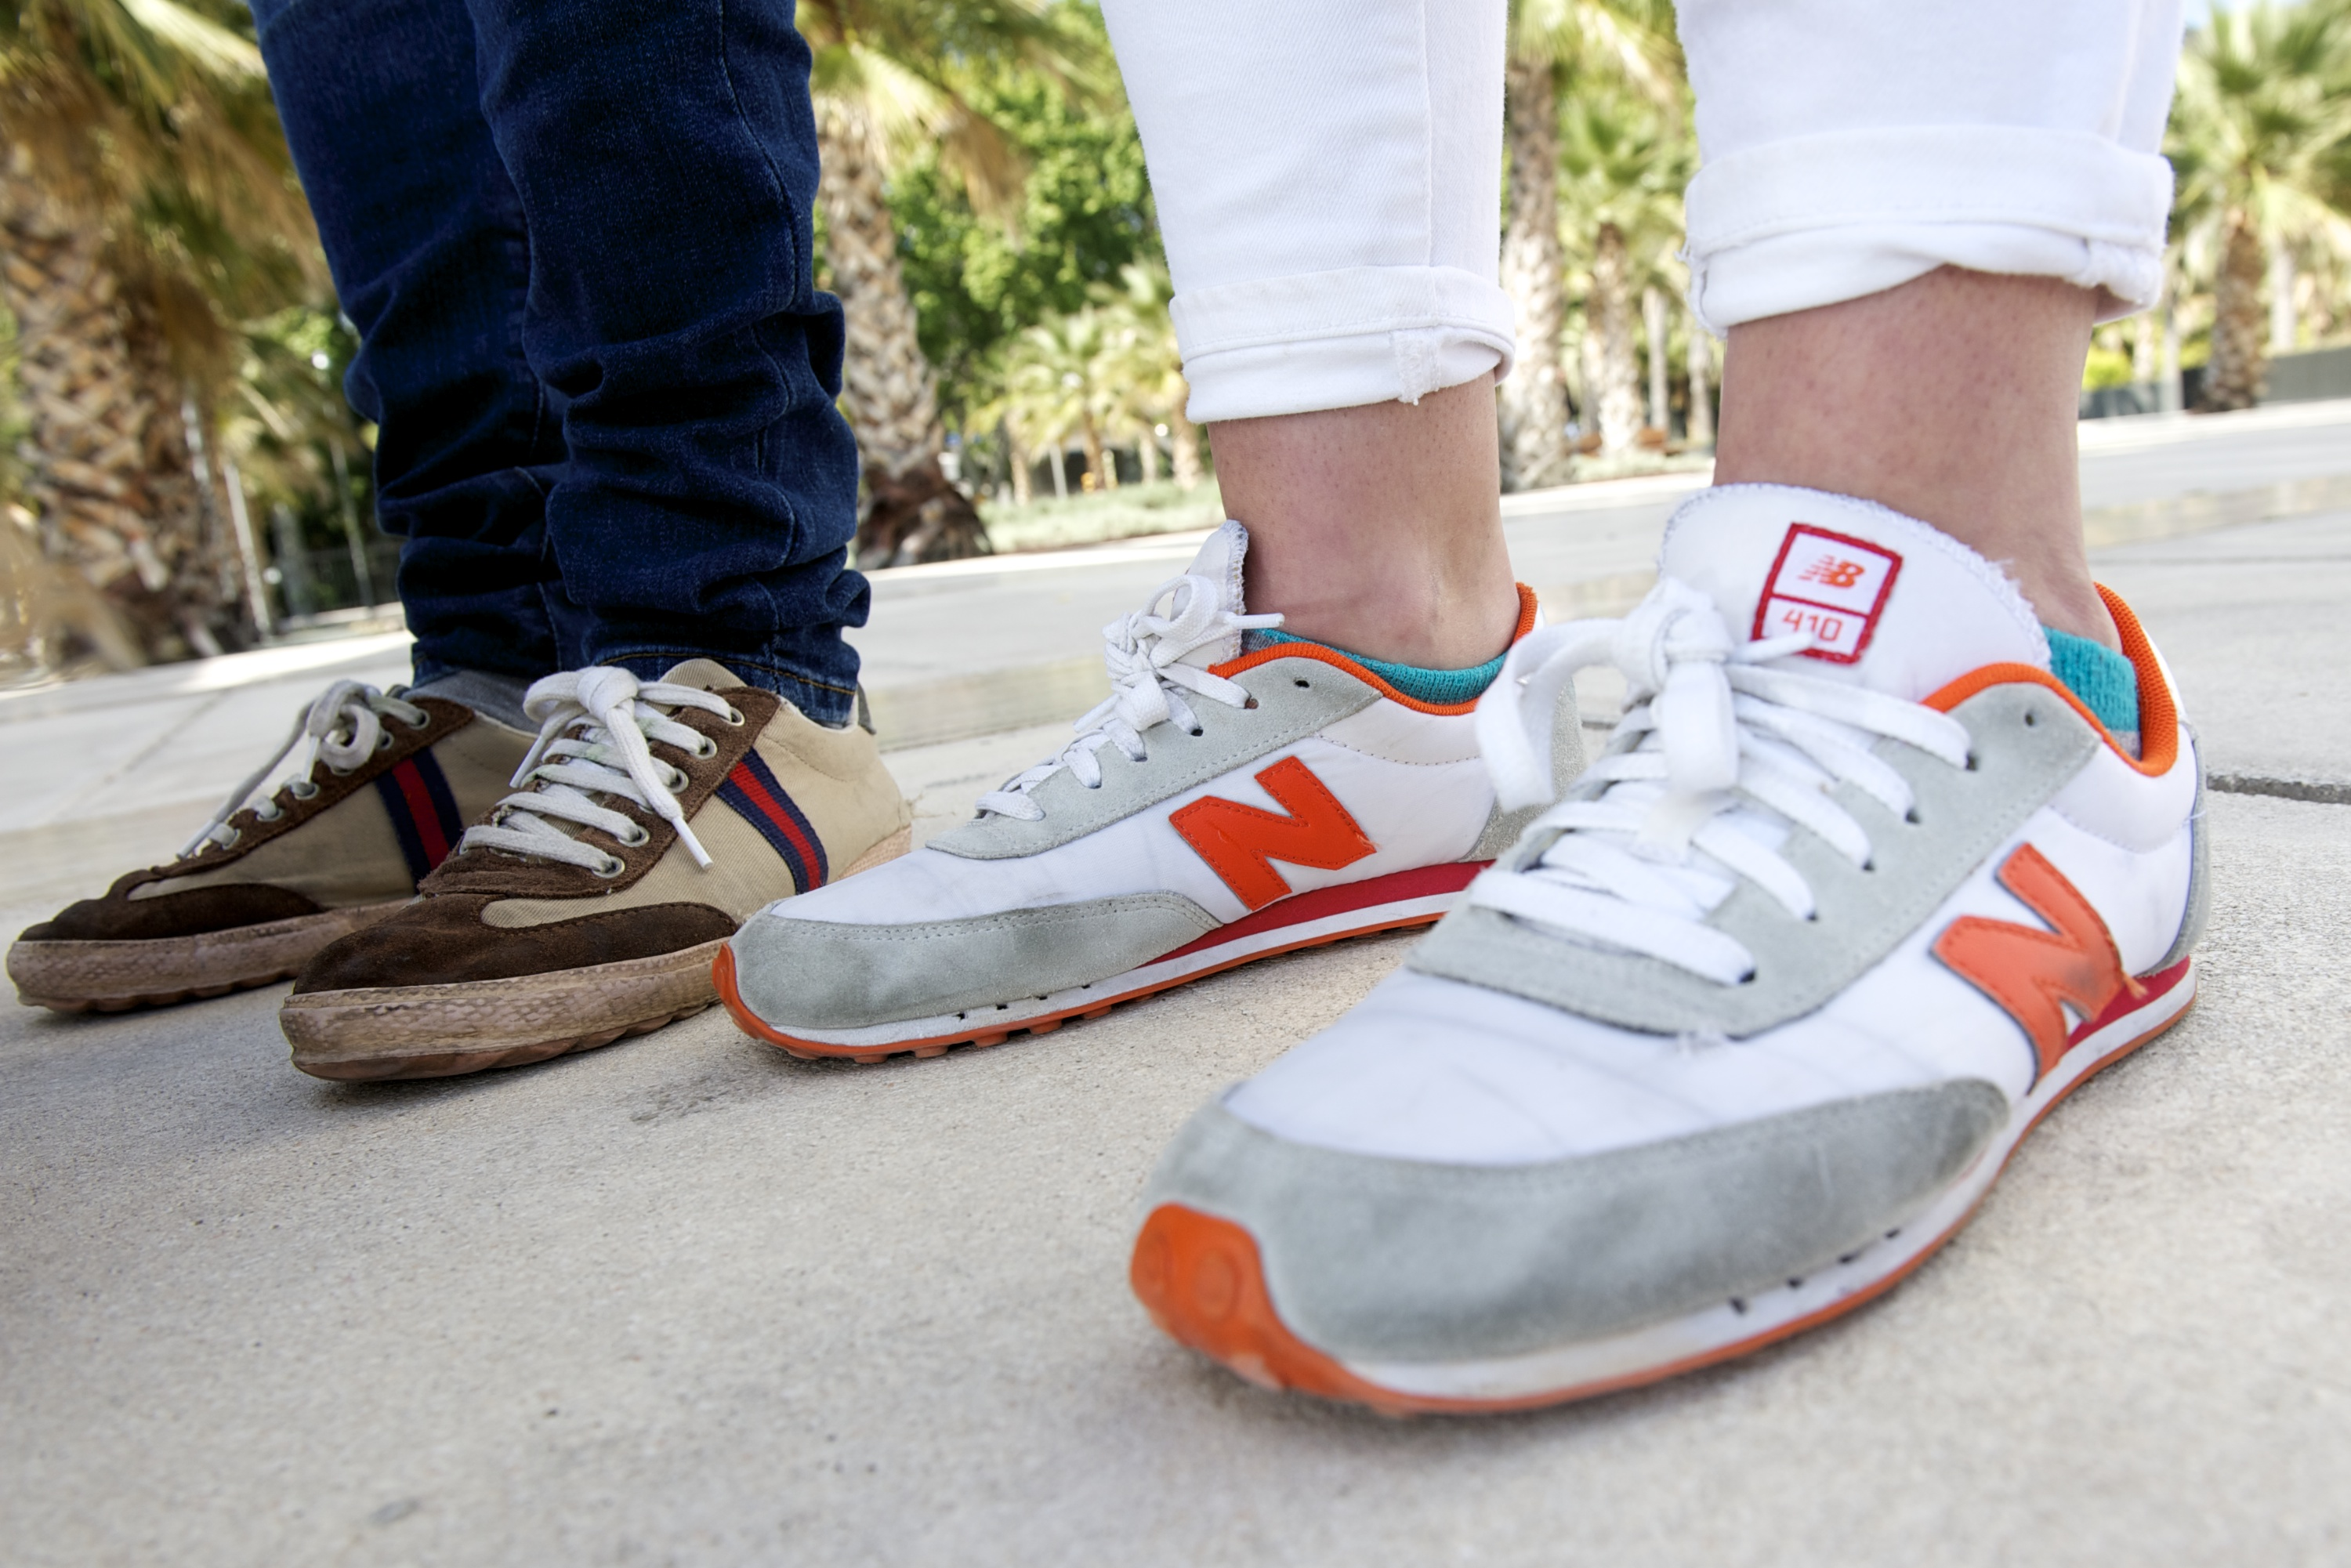 new balance sneakers burned